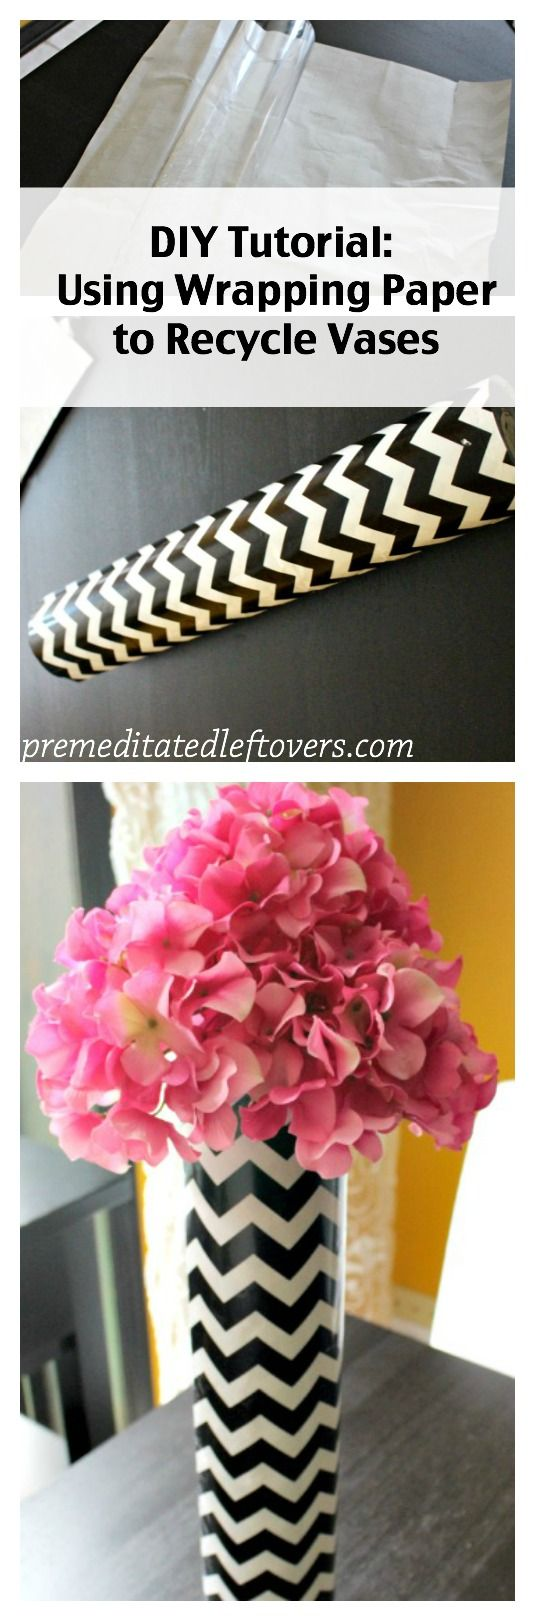 How to Use Wrapping Paper to Decorate Vases